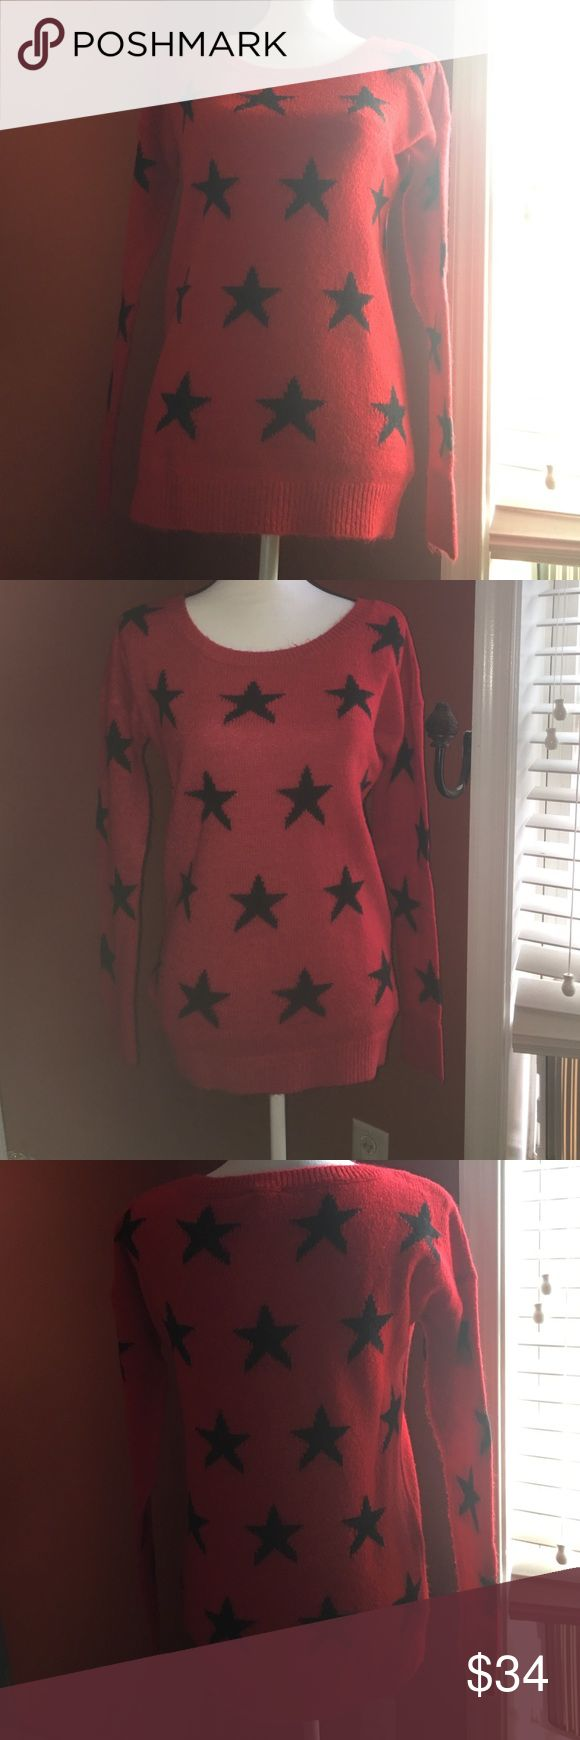 Express sweater size small. NWOT. Red sweater with black stars. Tried on-never worn. Taken to the dry-cleaners to sell as it sat in my closet for two years. Acrylic, nylon, wool and mohair. Very cute, soft and fitting. NWOT Express Sweaters Crew & Scoop Necks